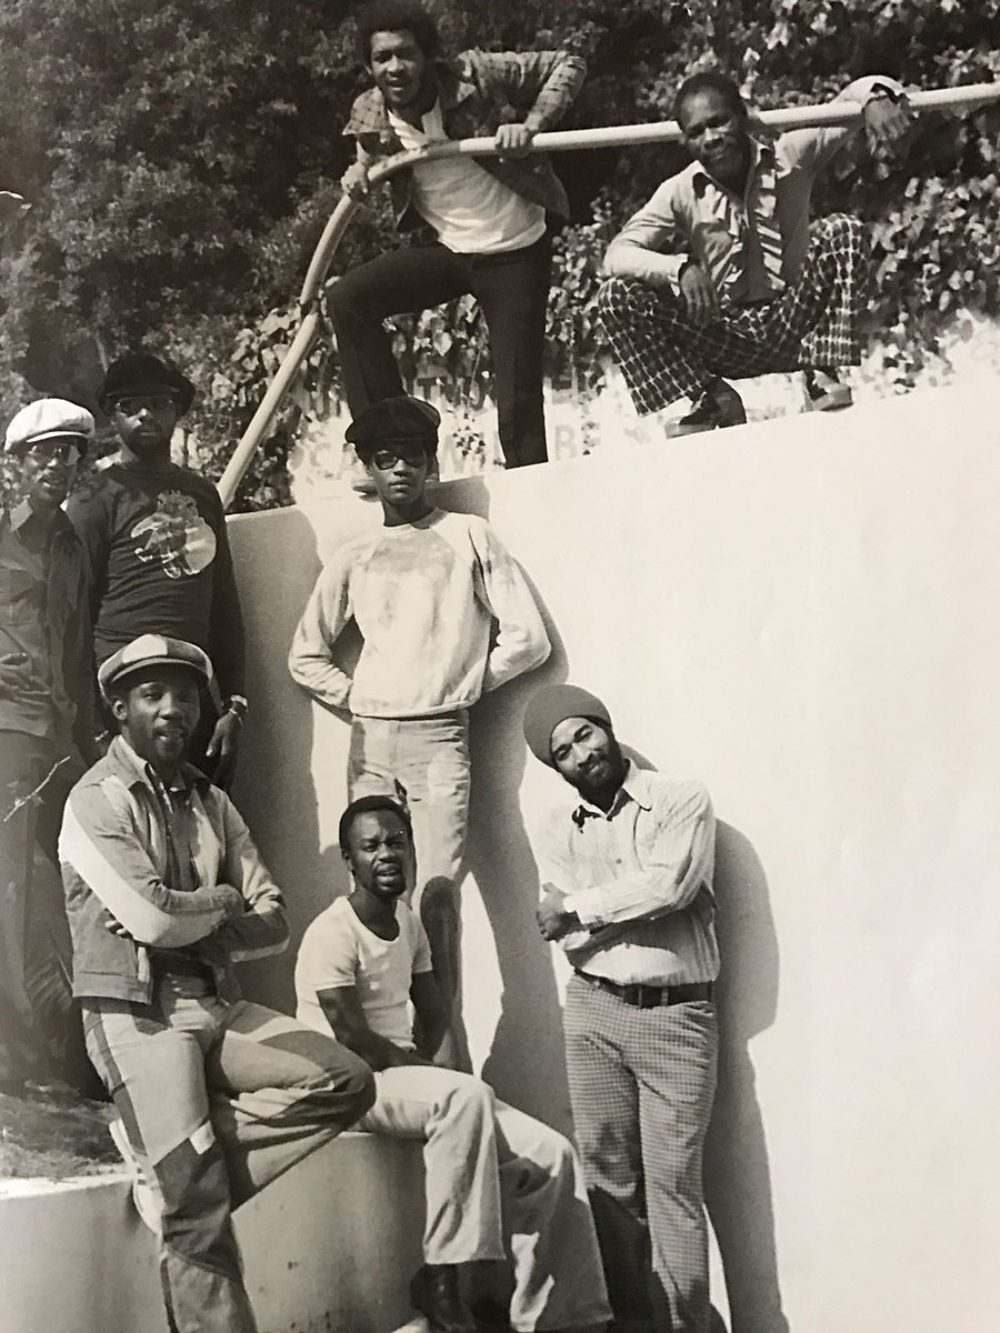 """Toots and the Maytals circa 1976. Top row: Paul Douglas, Raleigh Gordon. Middle row: Jerry Mathias, Jackie Jackson, Radcliffe """"Dougie"""" Bryan. Bottom row: Toots Hibbert, Hux Brown, Ansel Collins."""